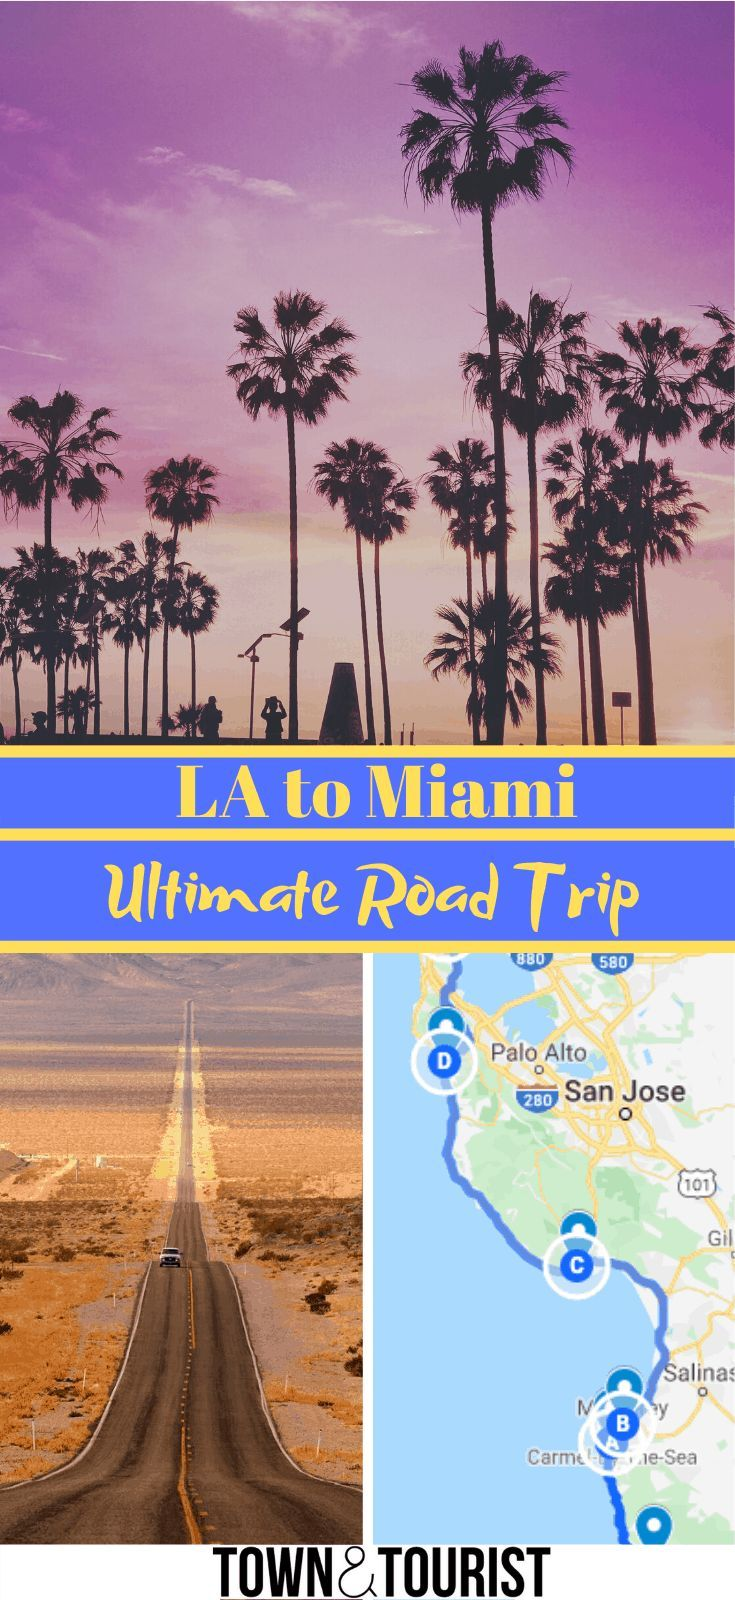 Los Angeles To Miami 5 Epic Ways To Travel Los Angeles Road Trip Trip Travel Route